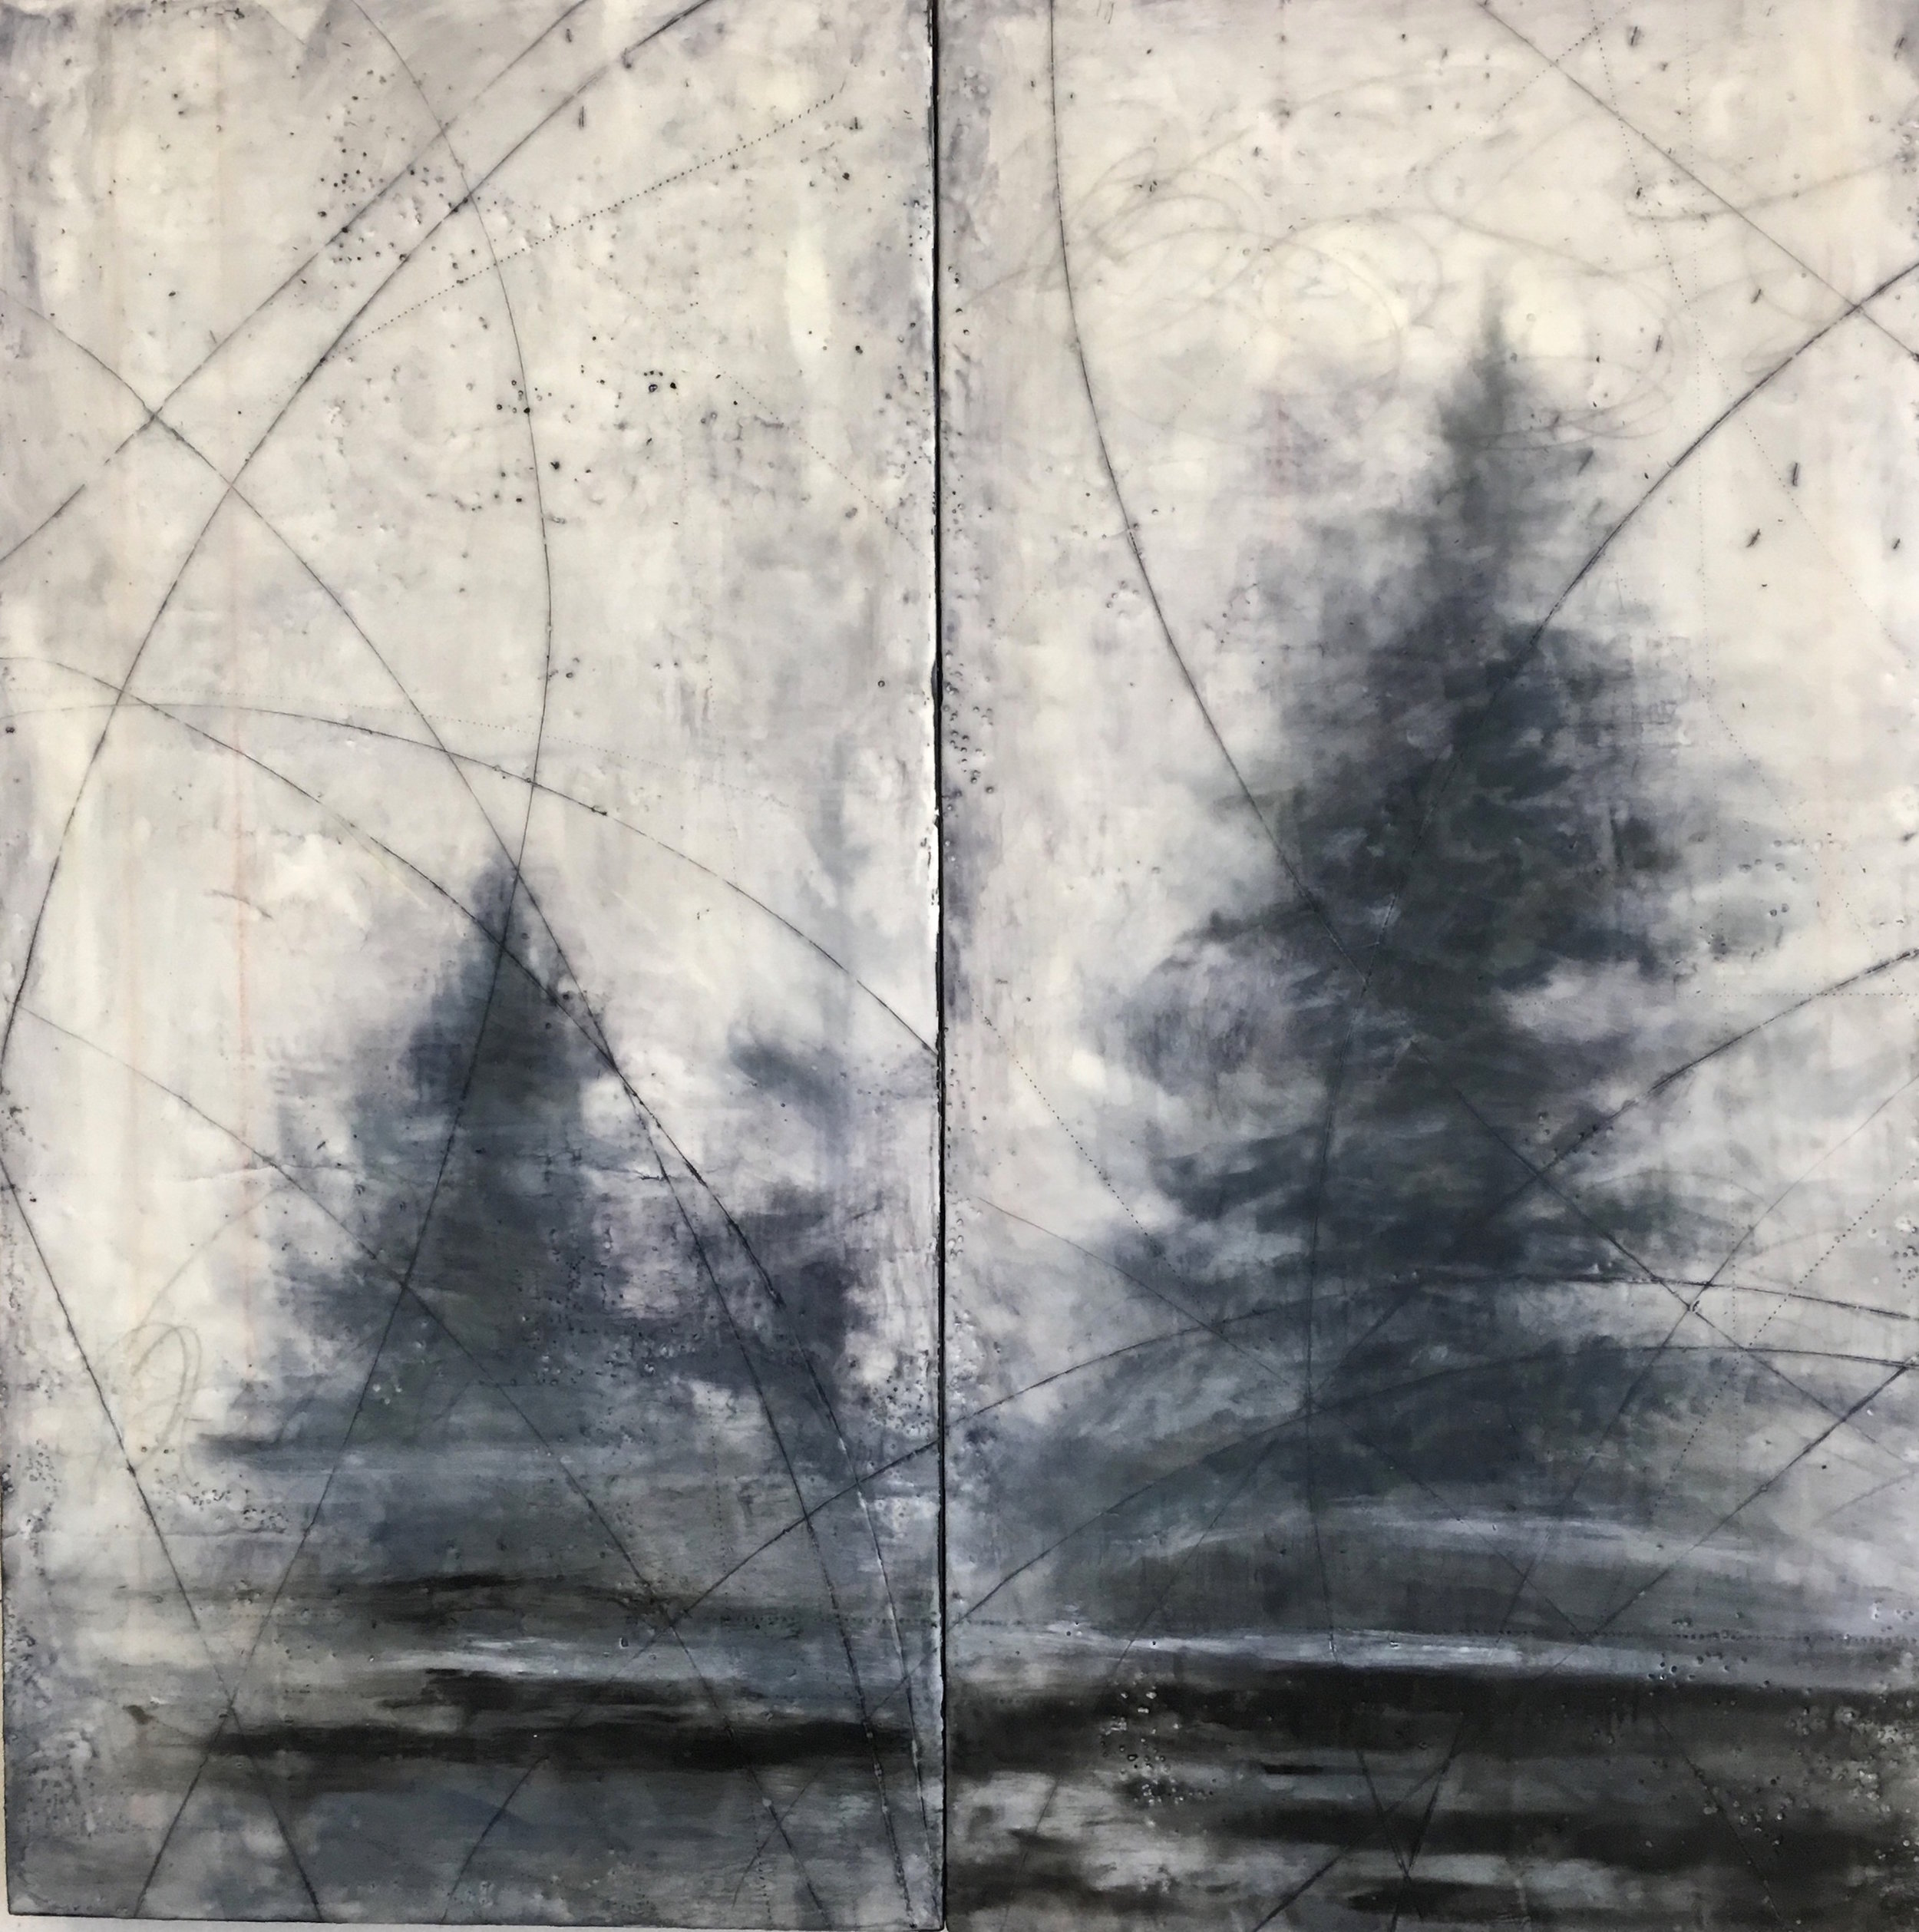 Gautreau_Forested_encaustic_24x24%22 diptych.2018.300dpi.jpg